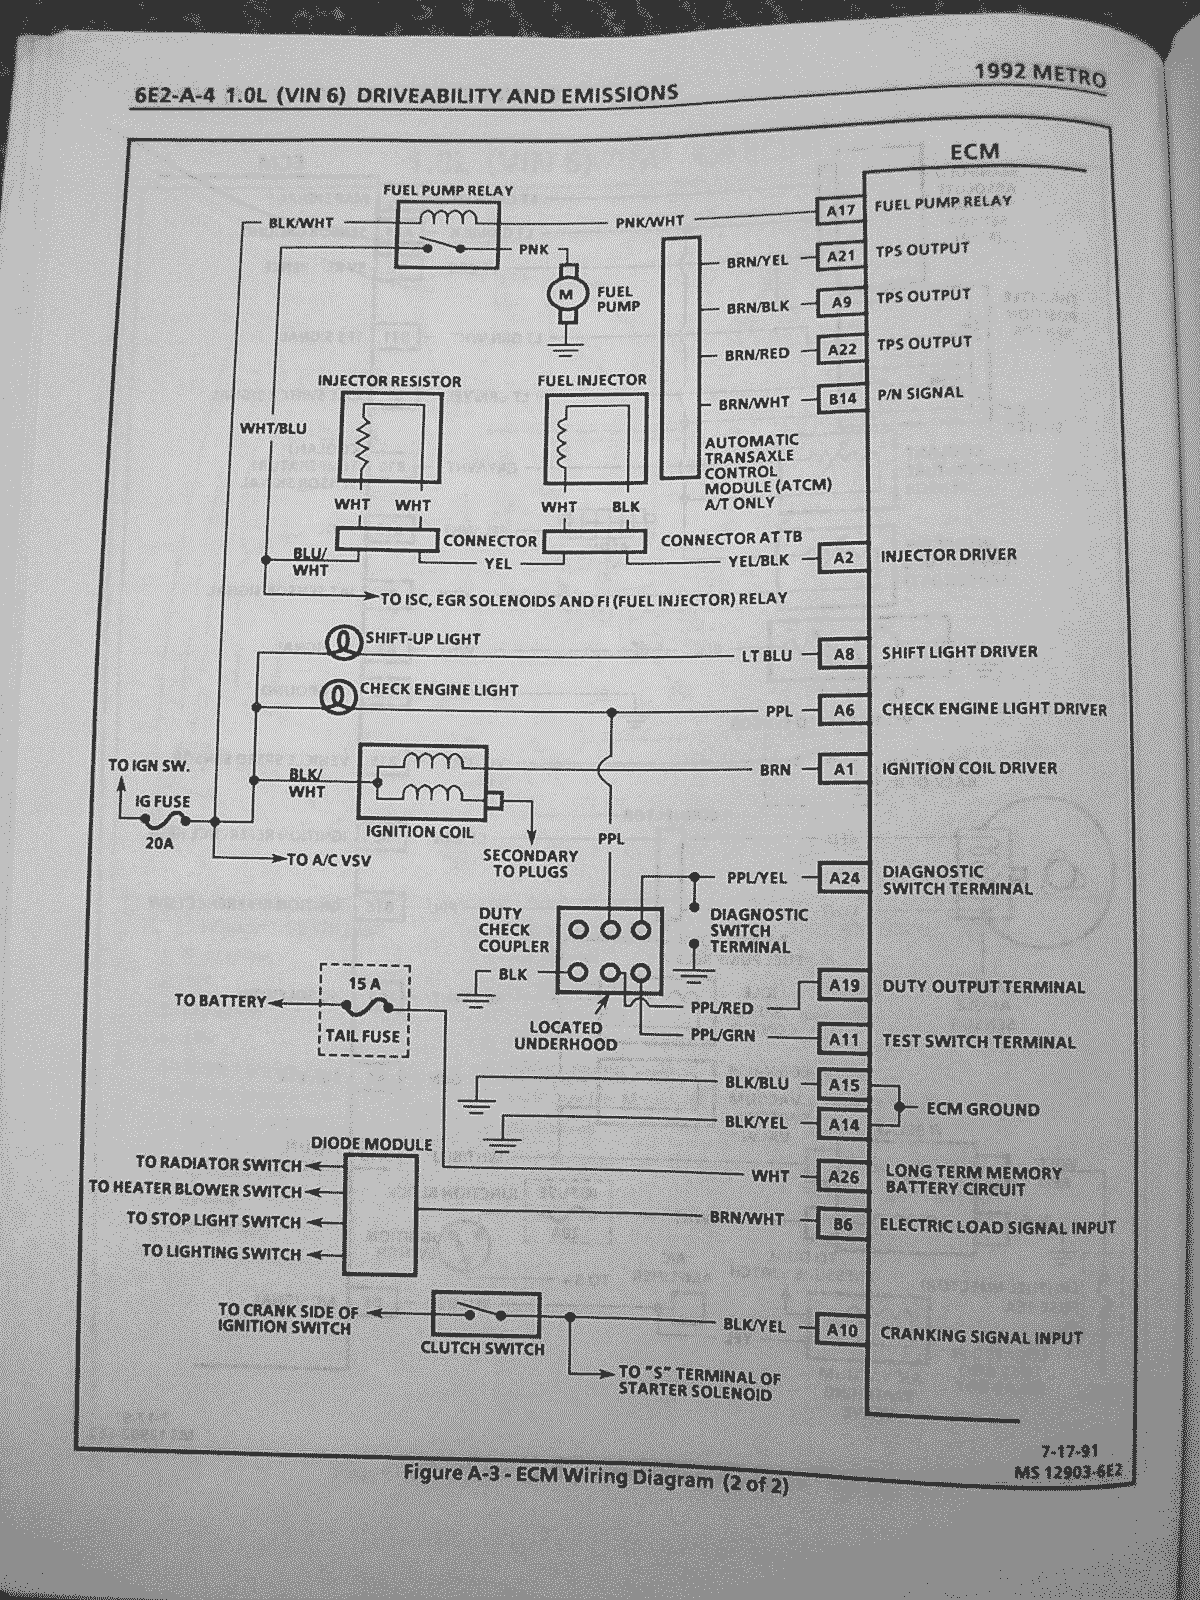 94 suzuki swift wiring diagram geo metro and suzuki swift wiring diagrams – metroxfi.com